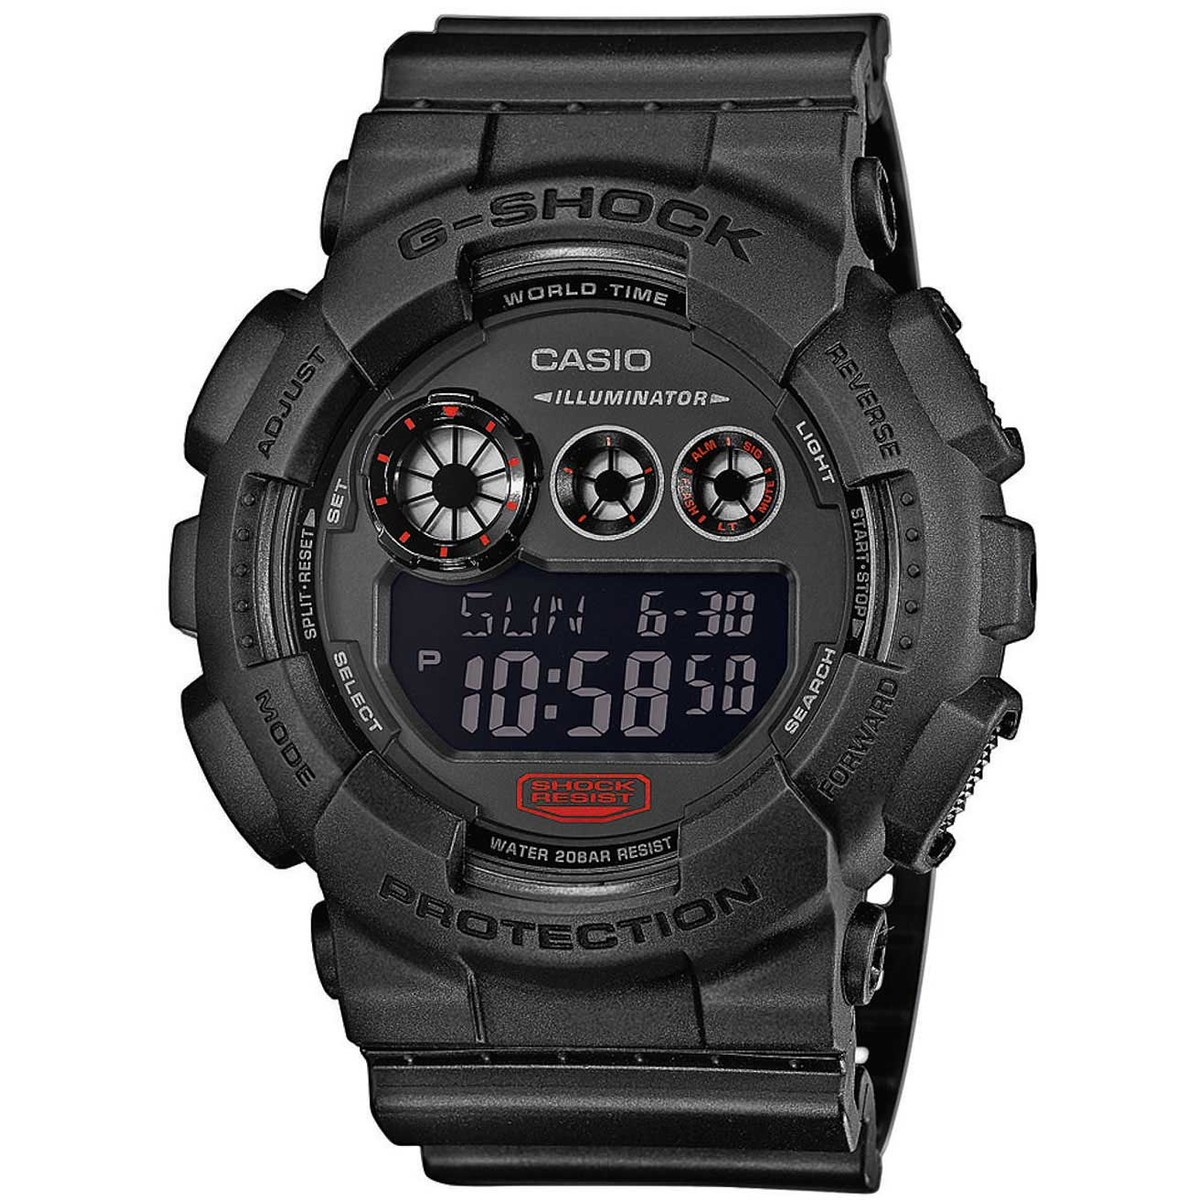 Ceas barbatesc Casio G-Shock GD-120MB-1ER de mana original